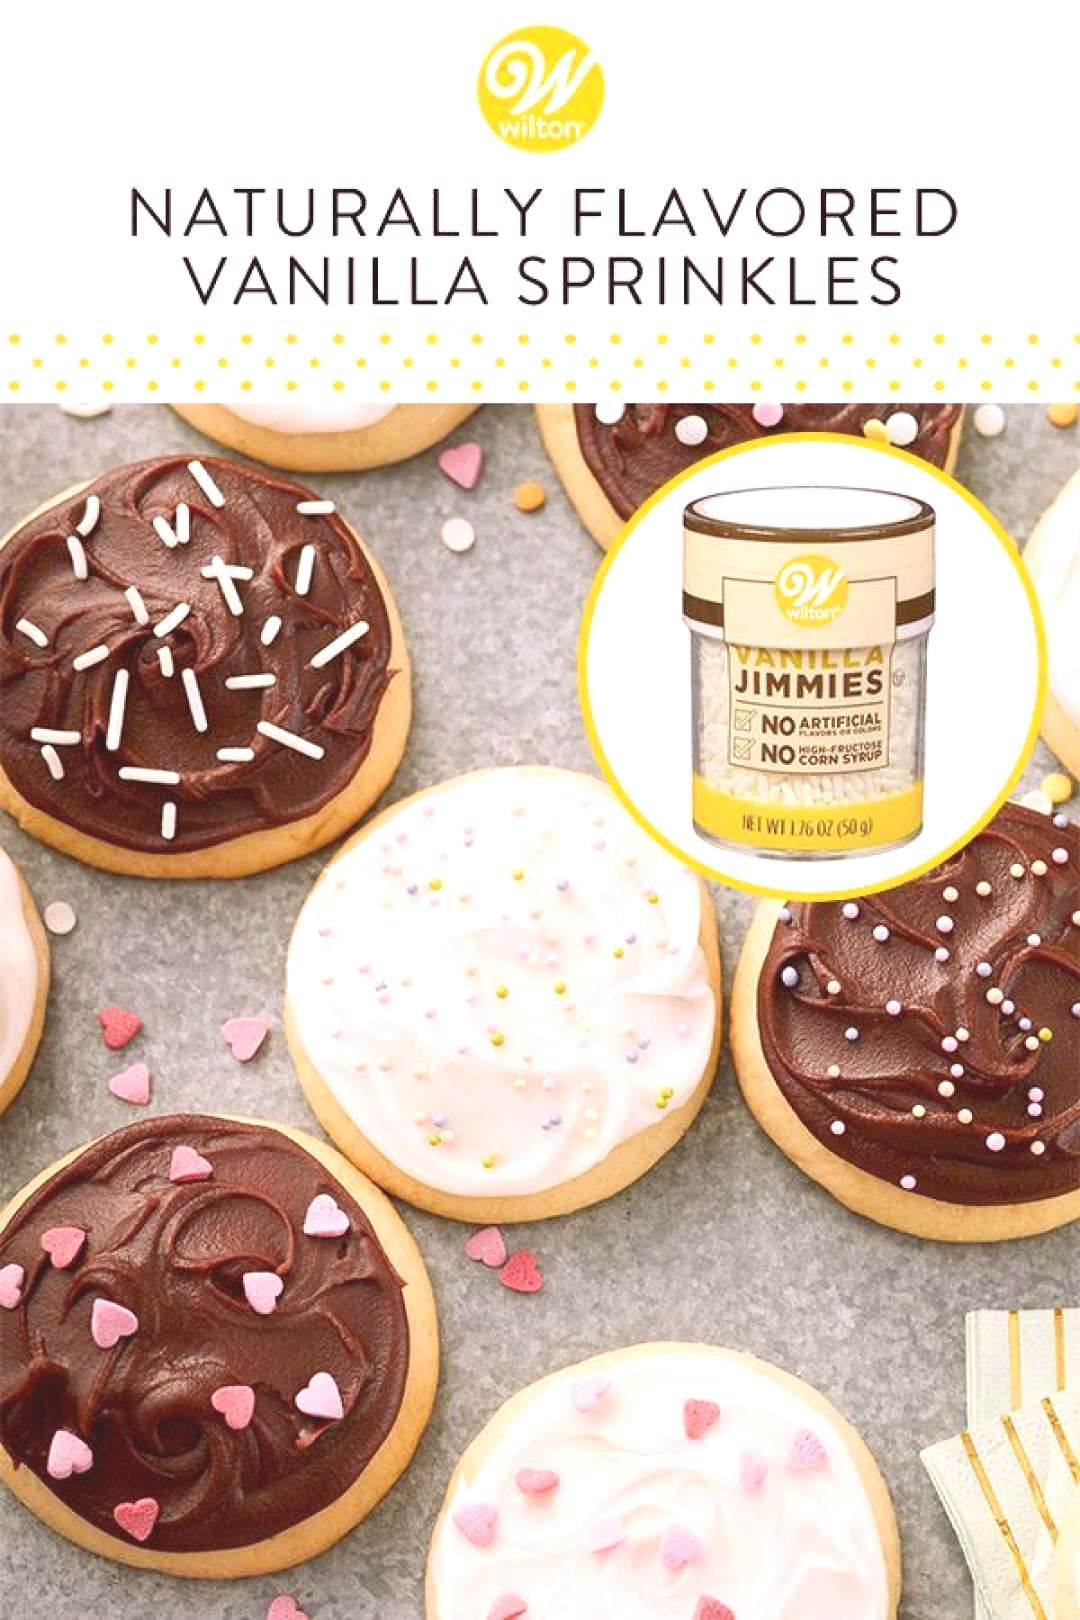 When you want to top your treats with pretty edible vanilla jimmies that have no artificial colors,